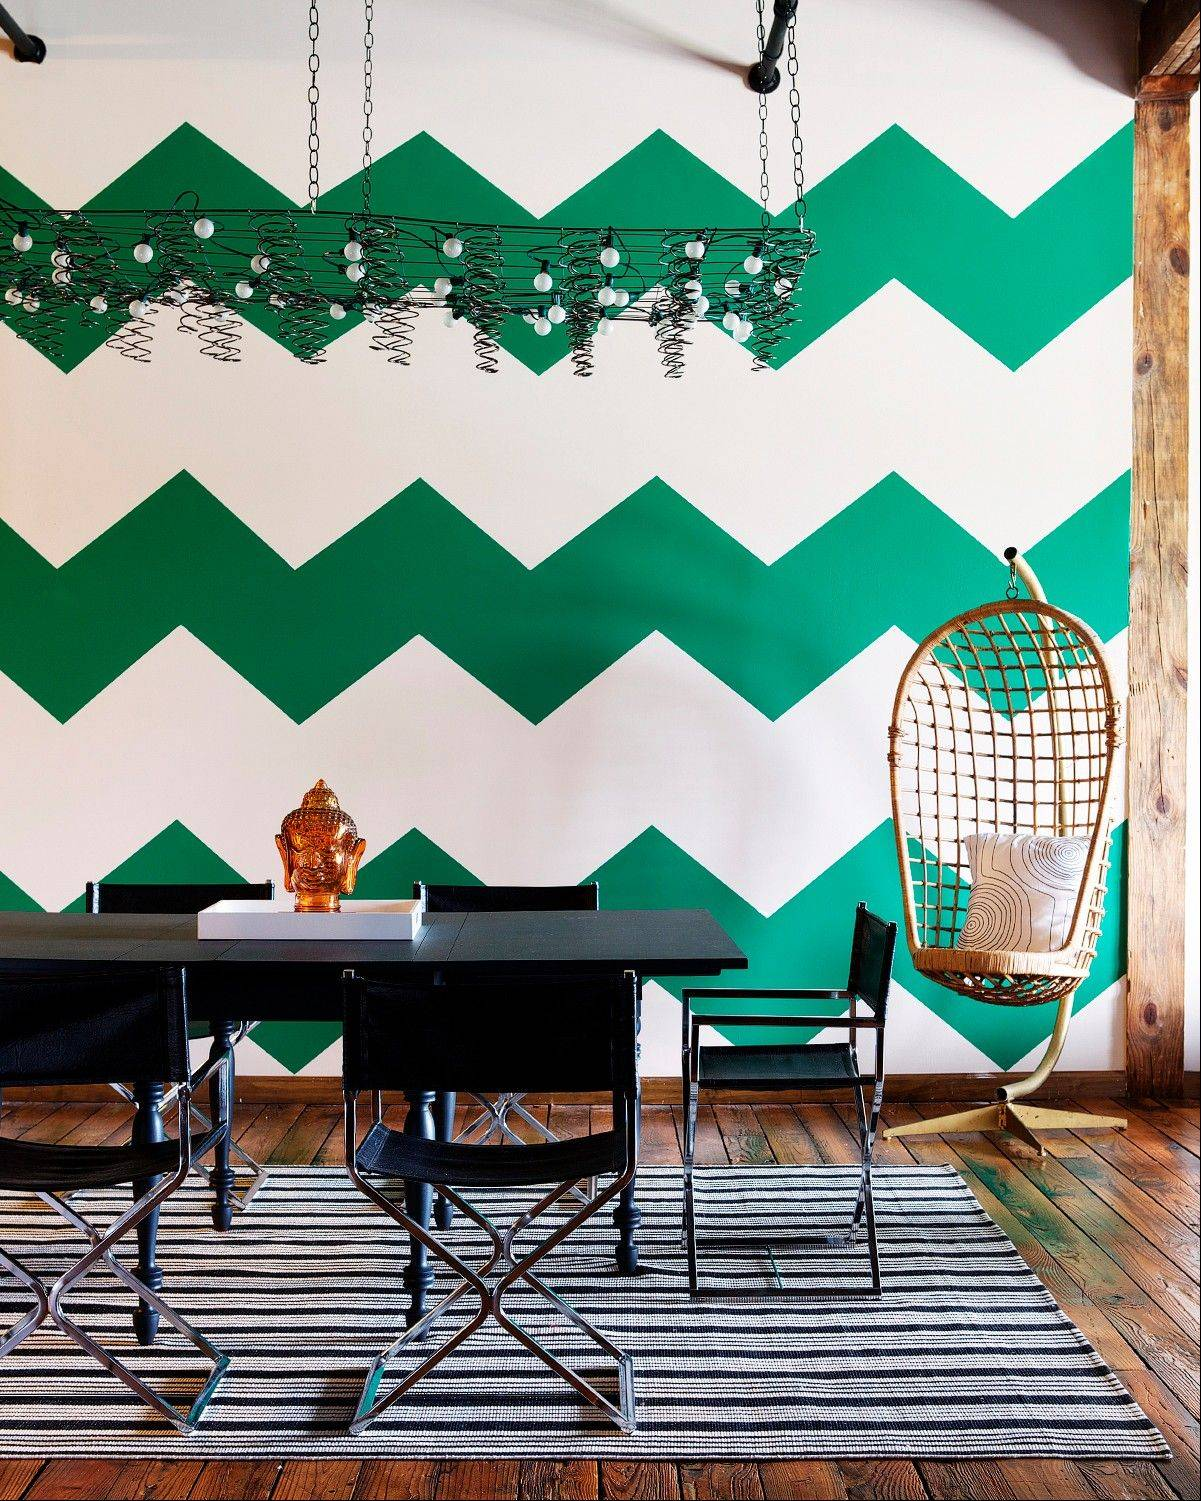 Stencils create the look of patterned wallpaper on a rental apartment wall, as seen here in �The First Apartment Book: Cool Design for Small Spaces,� by Kyle Schuneman.